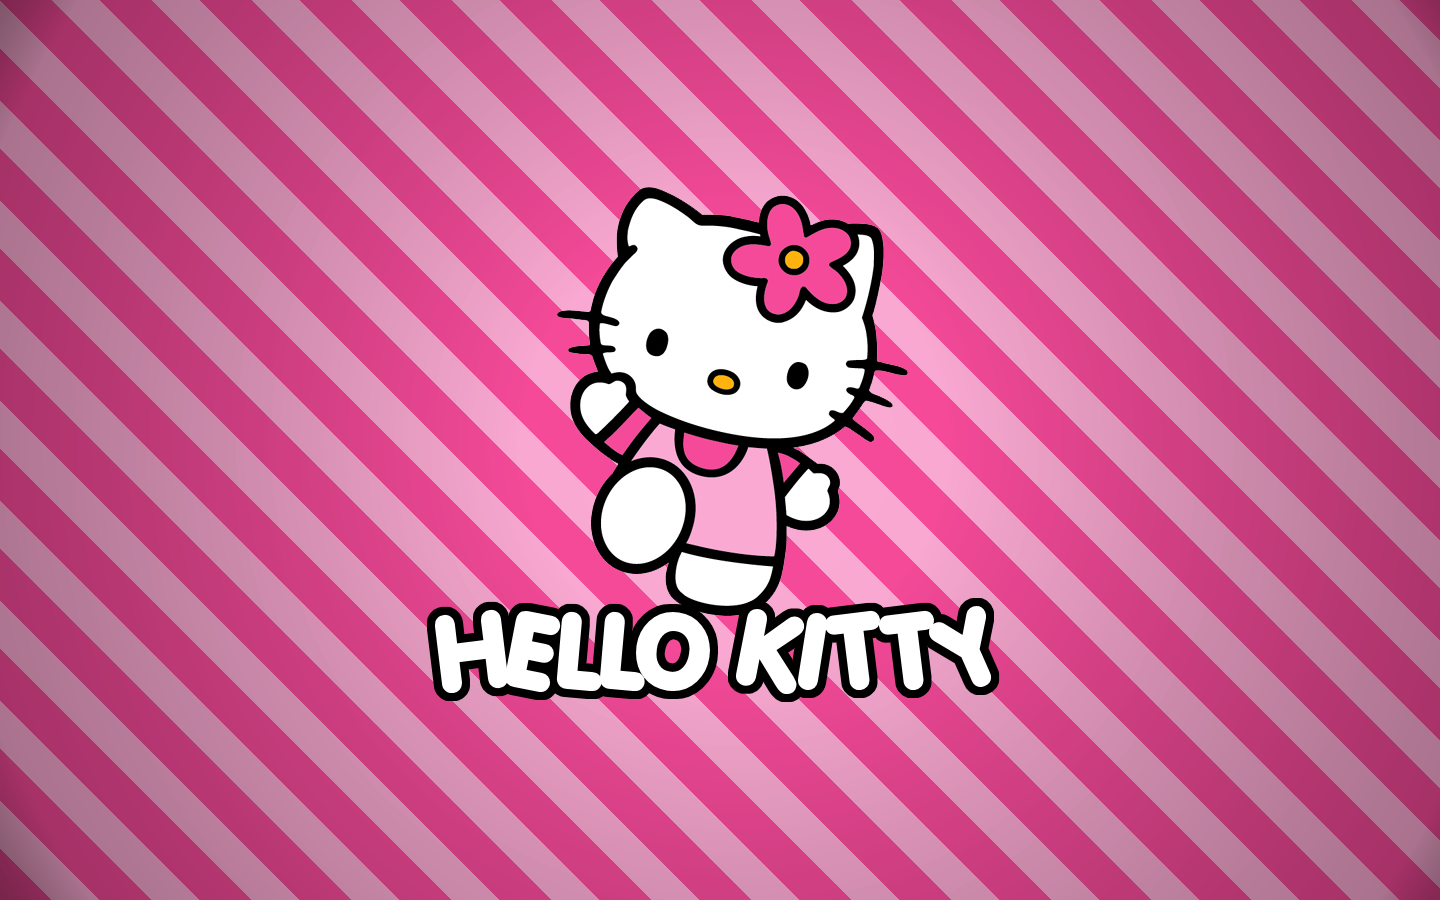 Hello kitty wallpaper pictures wallpapersafari ol kt wallpapers hello kitty para pc 1440x900 thecheapjerseys Choice Image